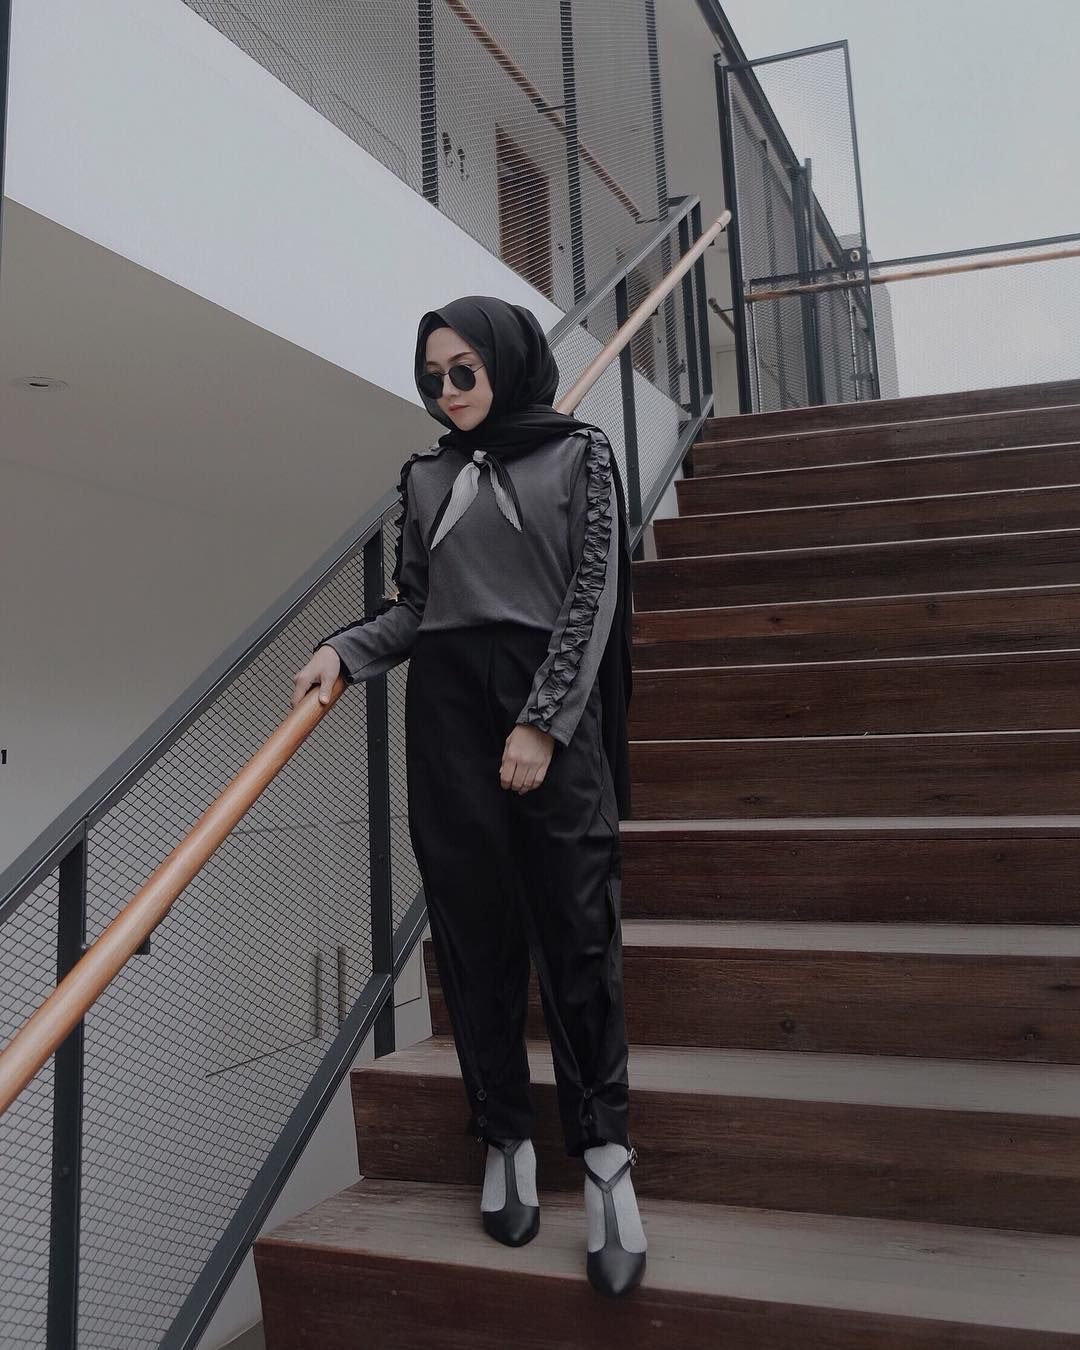 Ootd Baju Hijab Kekinian Ala Selebgram 2018 Wedges High Heels Long